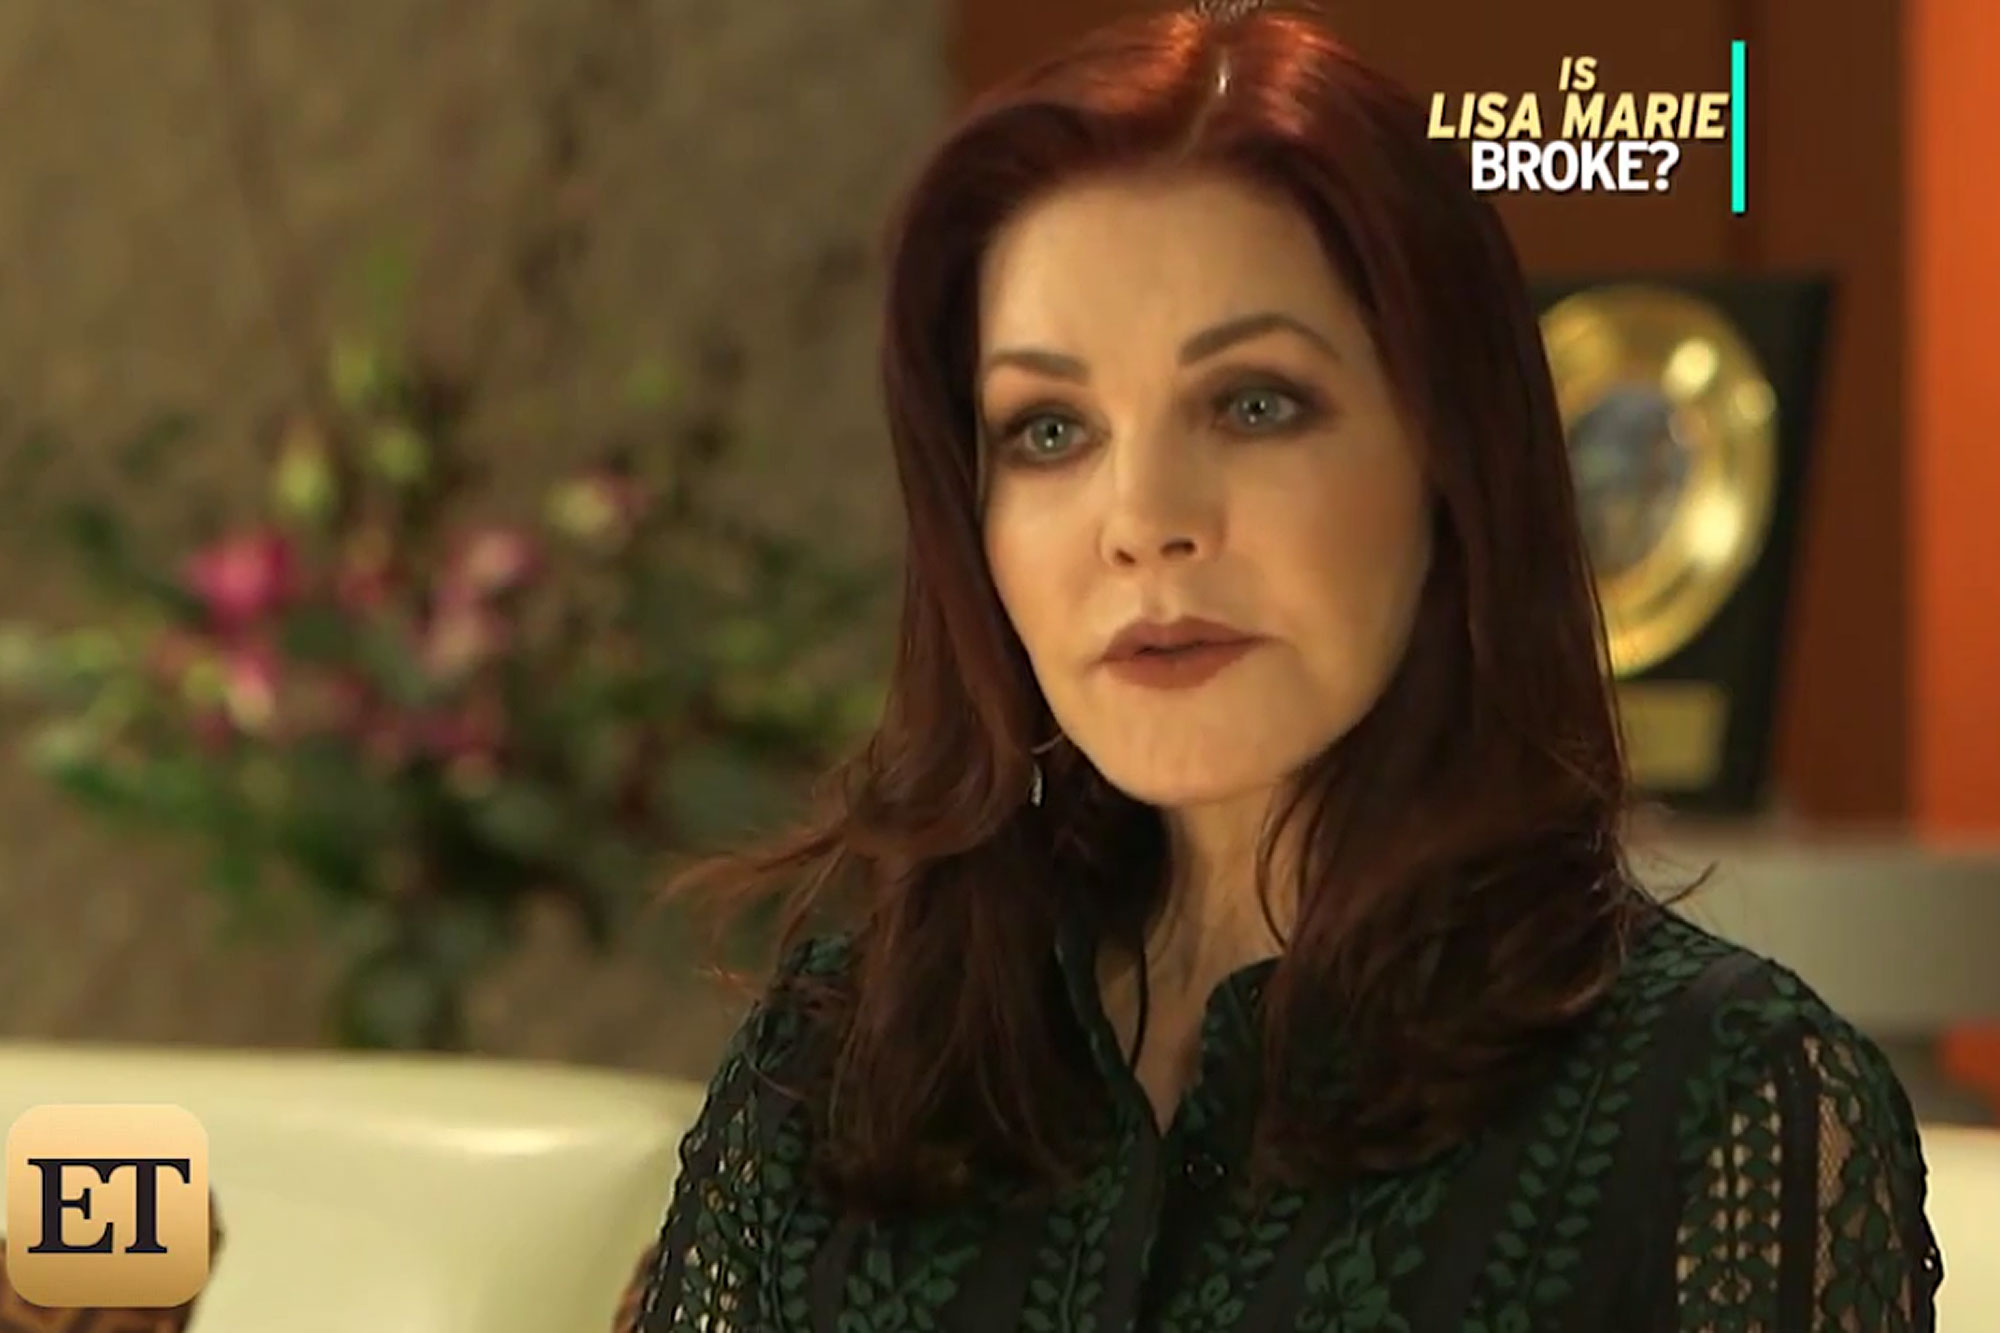 http://www.etonline.com/news/211859_exclusive_priscilla_presley_on_daughter_lisa_marie_court_battle_with_estranged_ex/ Priscilla Presley Opens Up About Daughter Lisa Marie's Court Battle With Estranged Ex